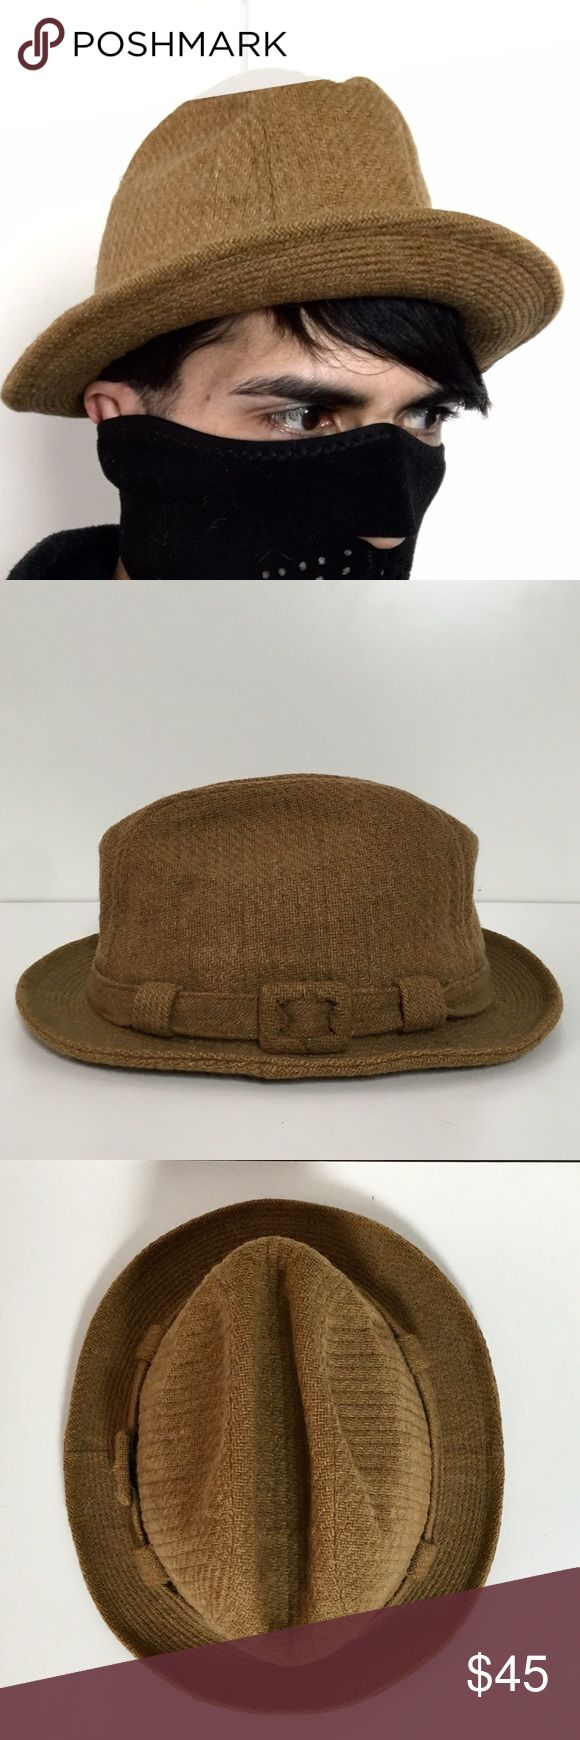 Vintage Stetson fedora Extra warm and stylish as could be. Original Stetson in great condition! Stetson Accessories Hats